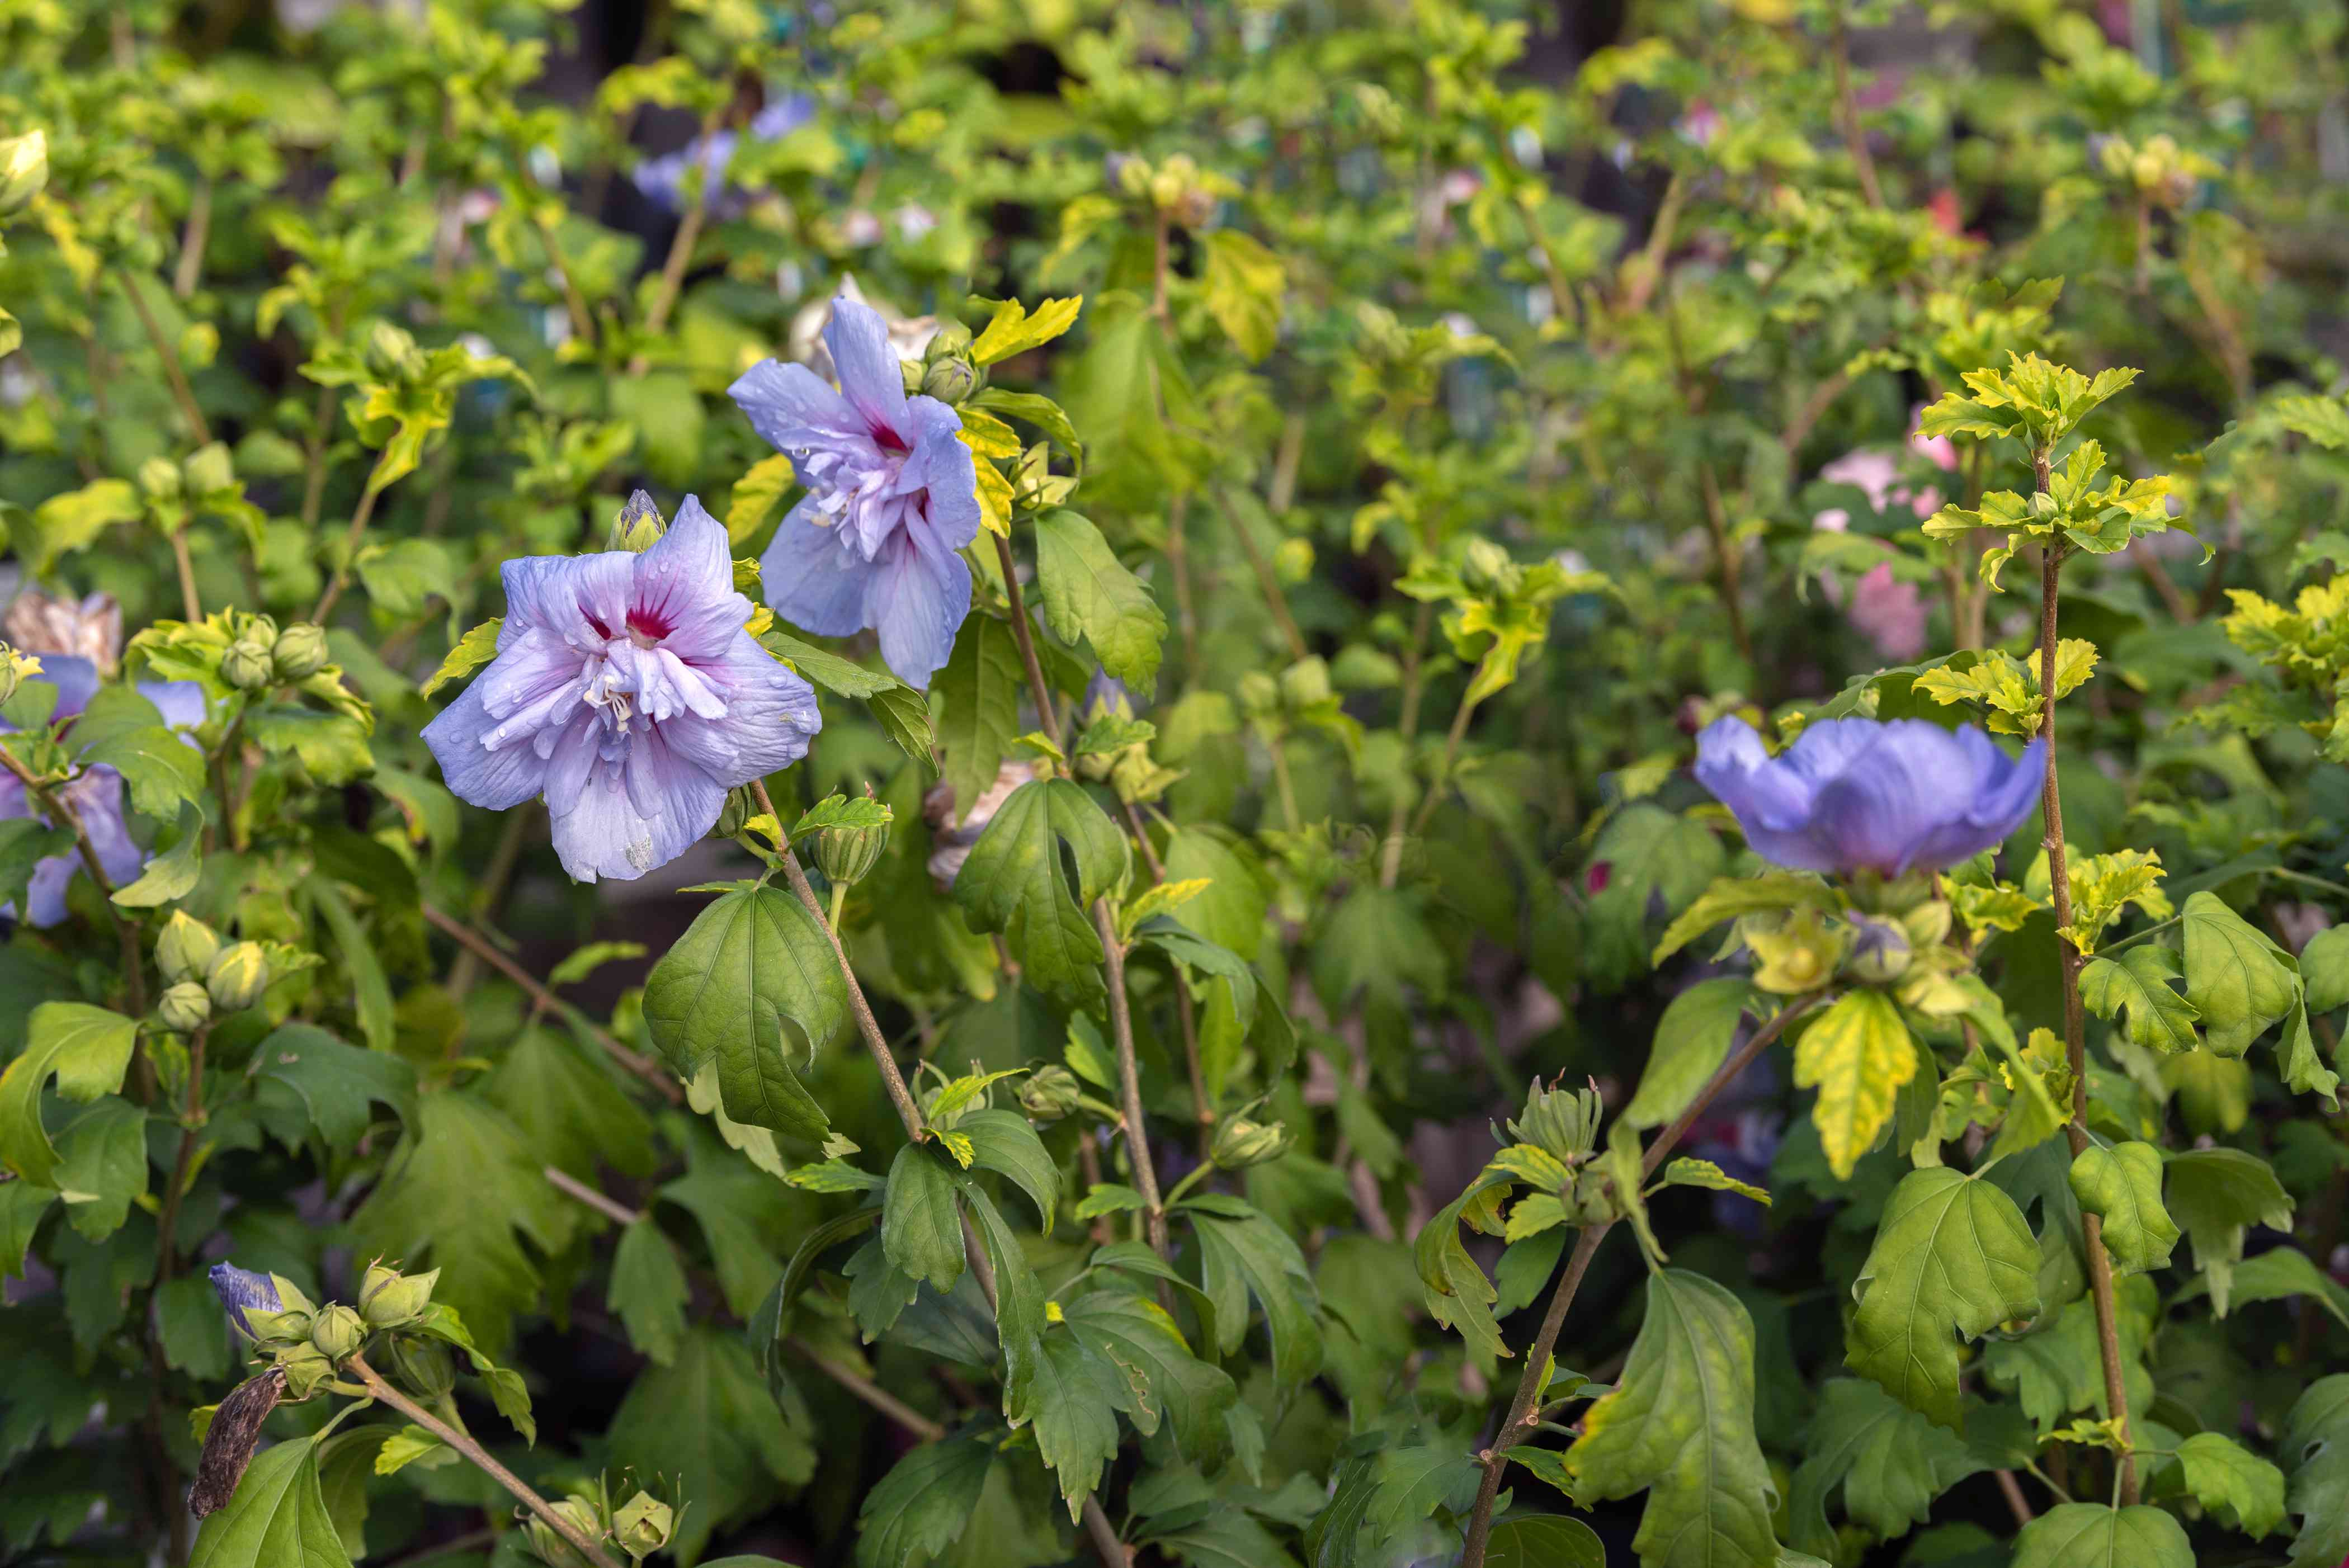 Blue chiffon rose of sharon flowers with violet peals on thin stems with yellow-green leaves